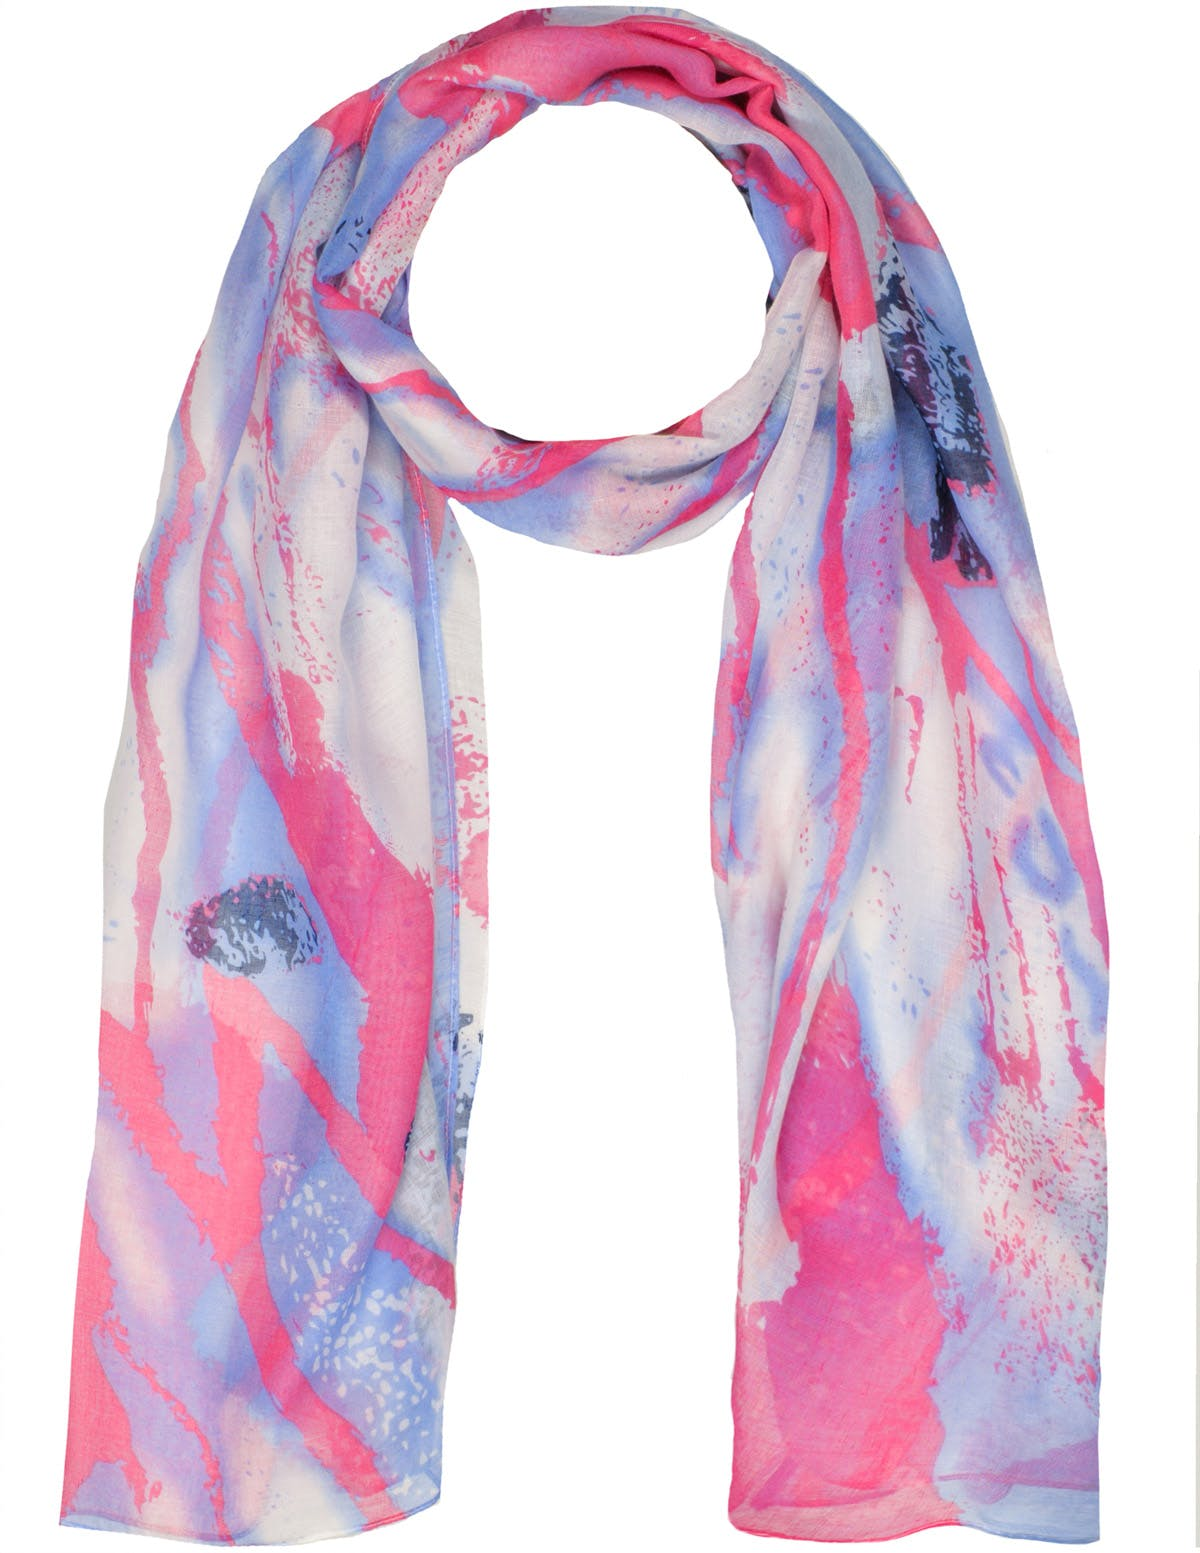 BASEFIELD Tuch HOLLY - Lily Pink Daylight